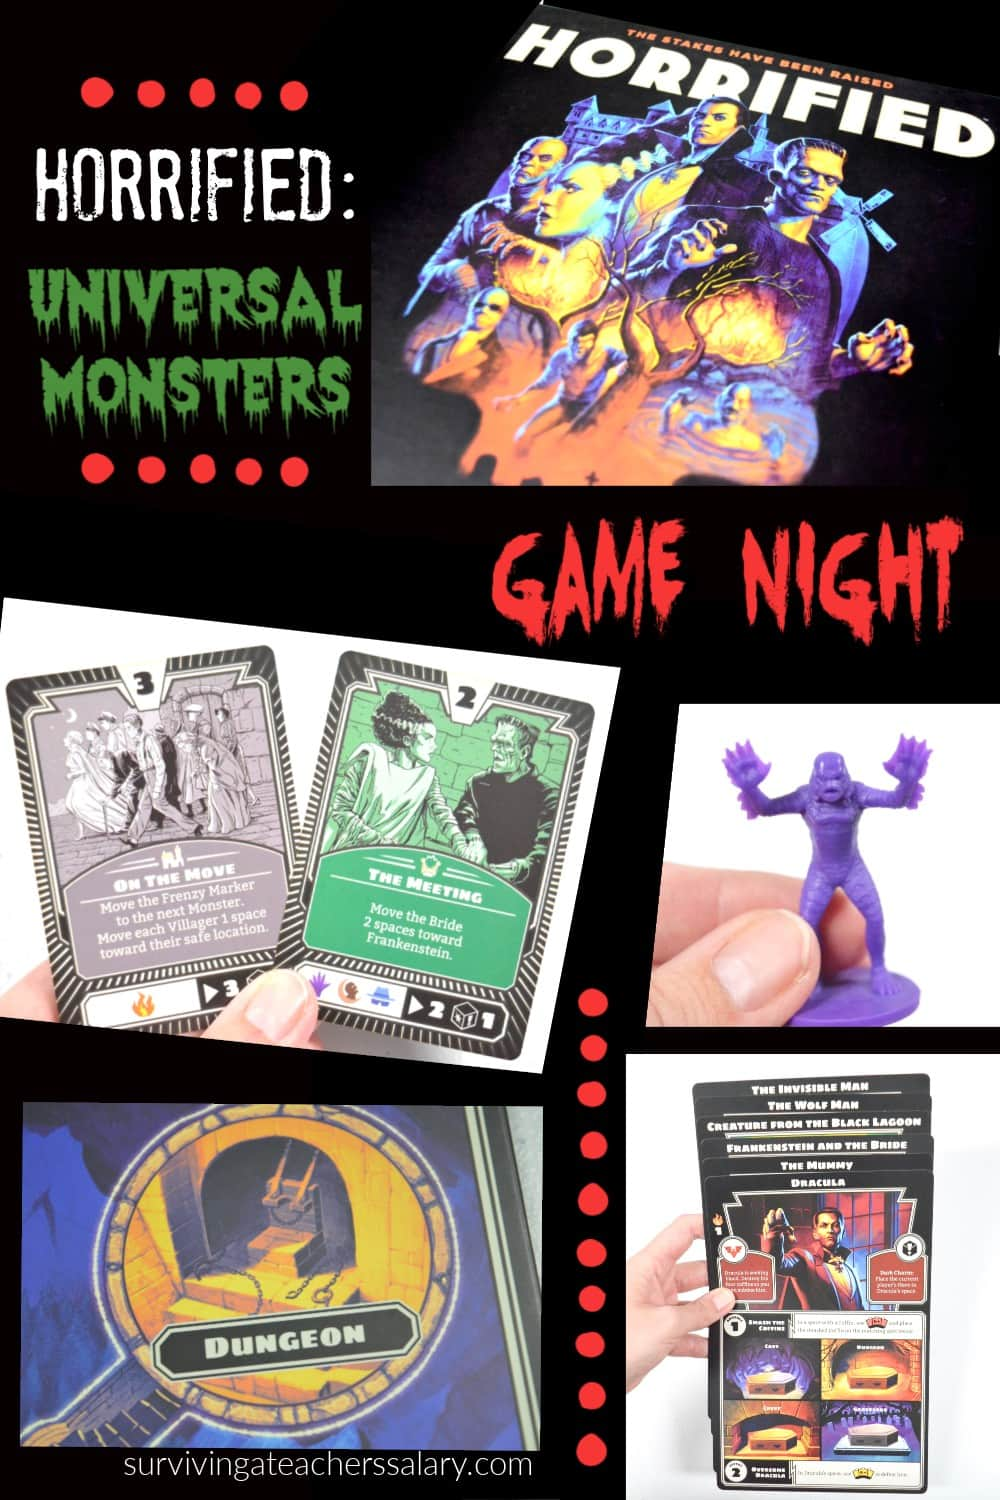 How to Play the Horrified: Universal Monsters Game by Ravensburger